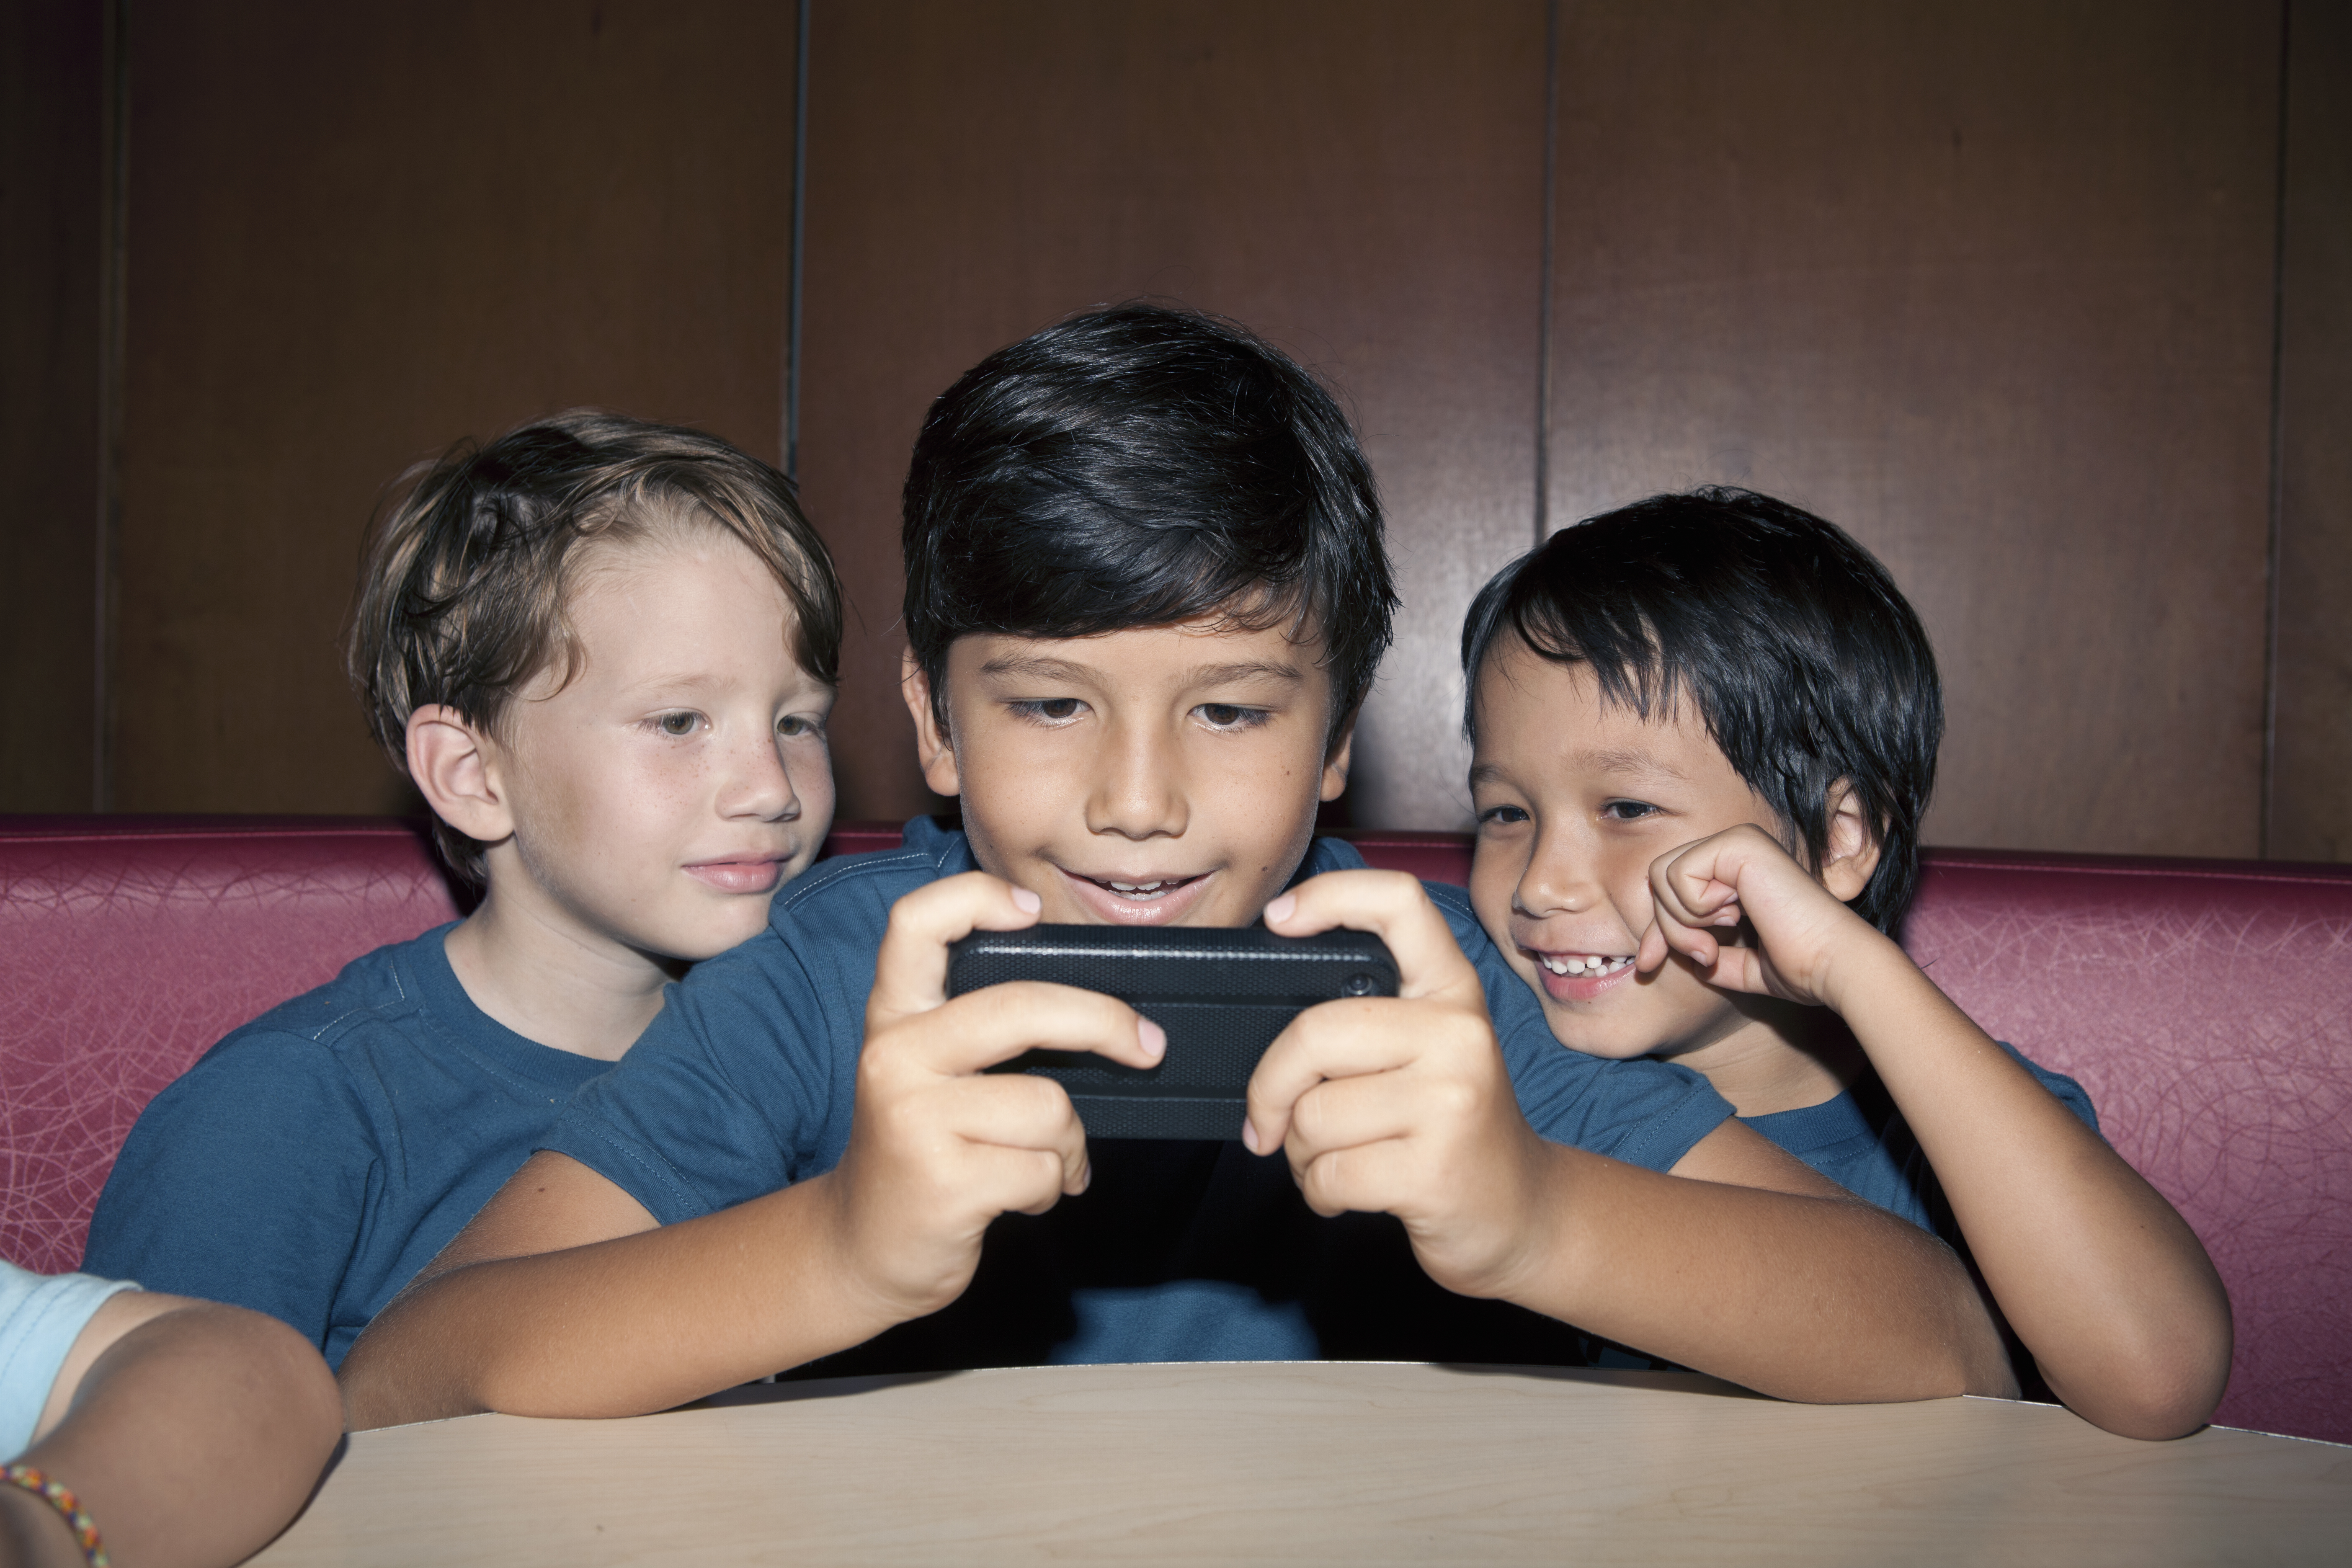 Young boys playing games with smartphone